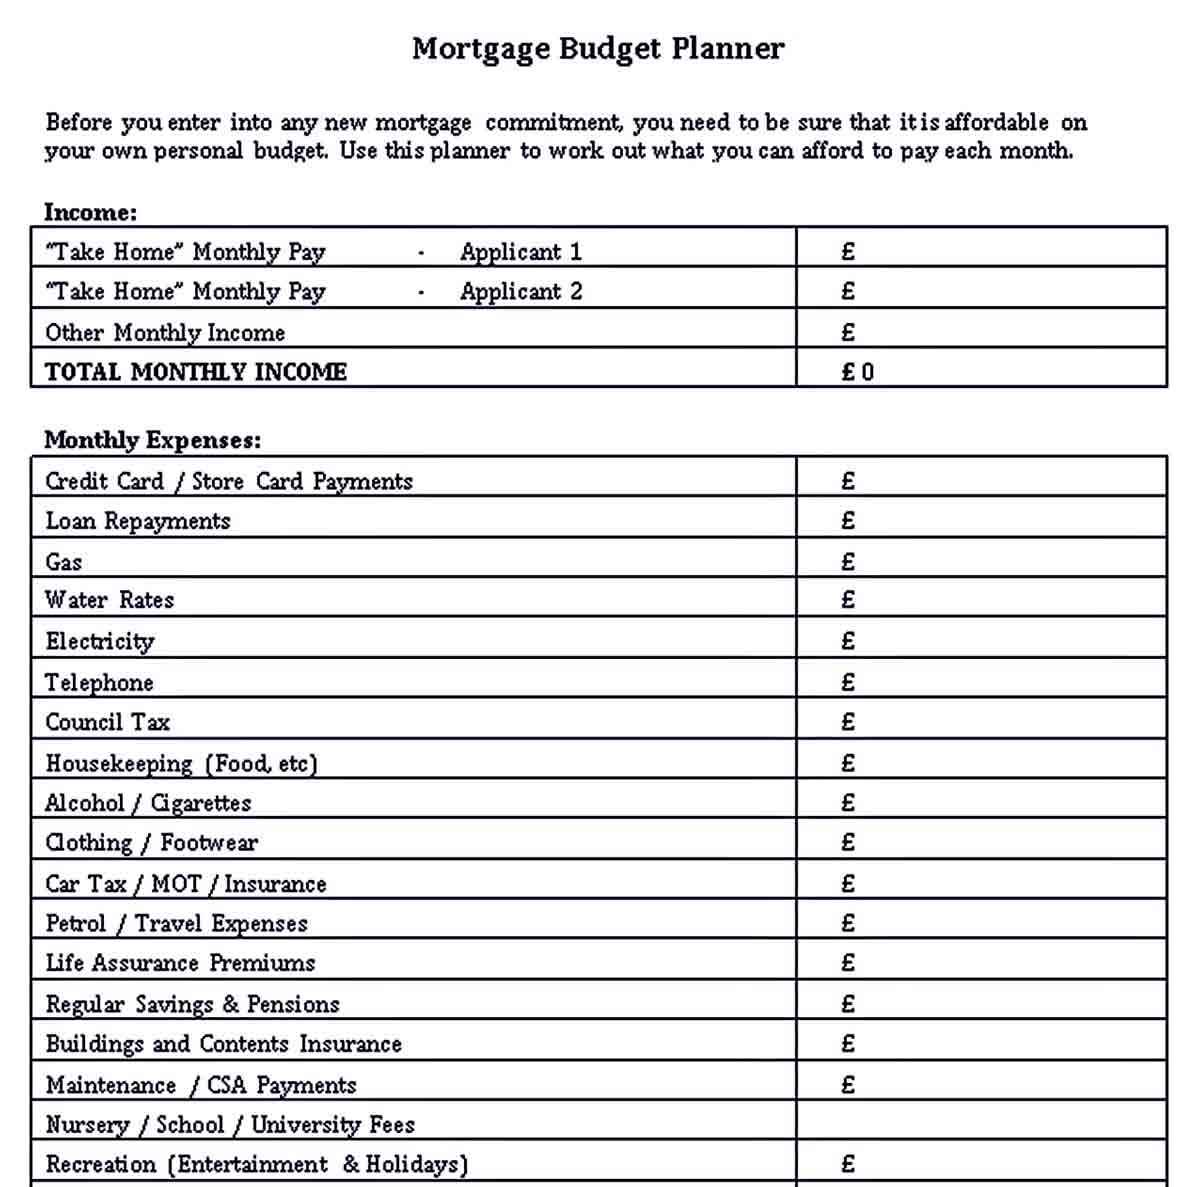 Monthly Budget Planners Template